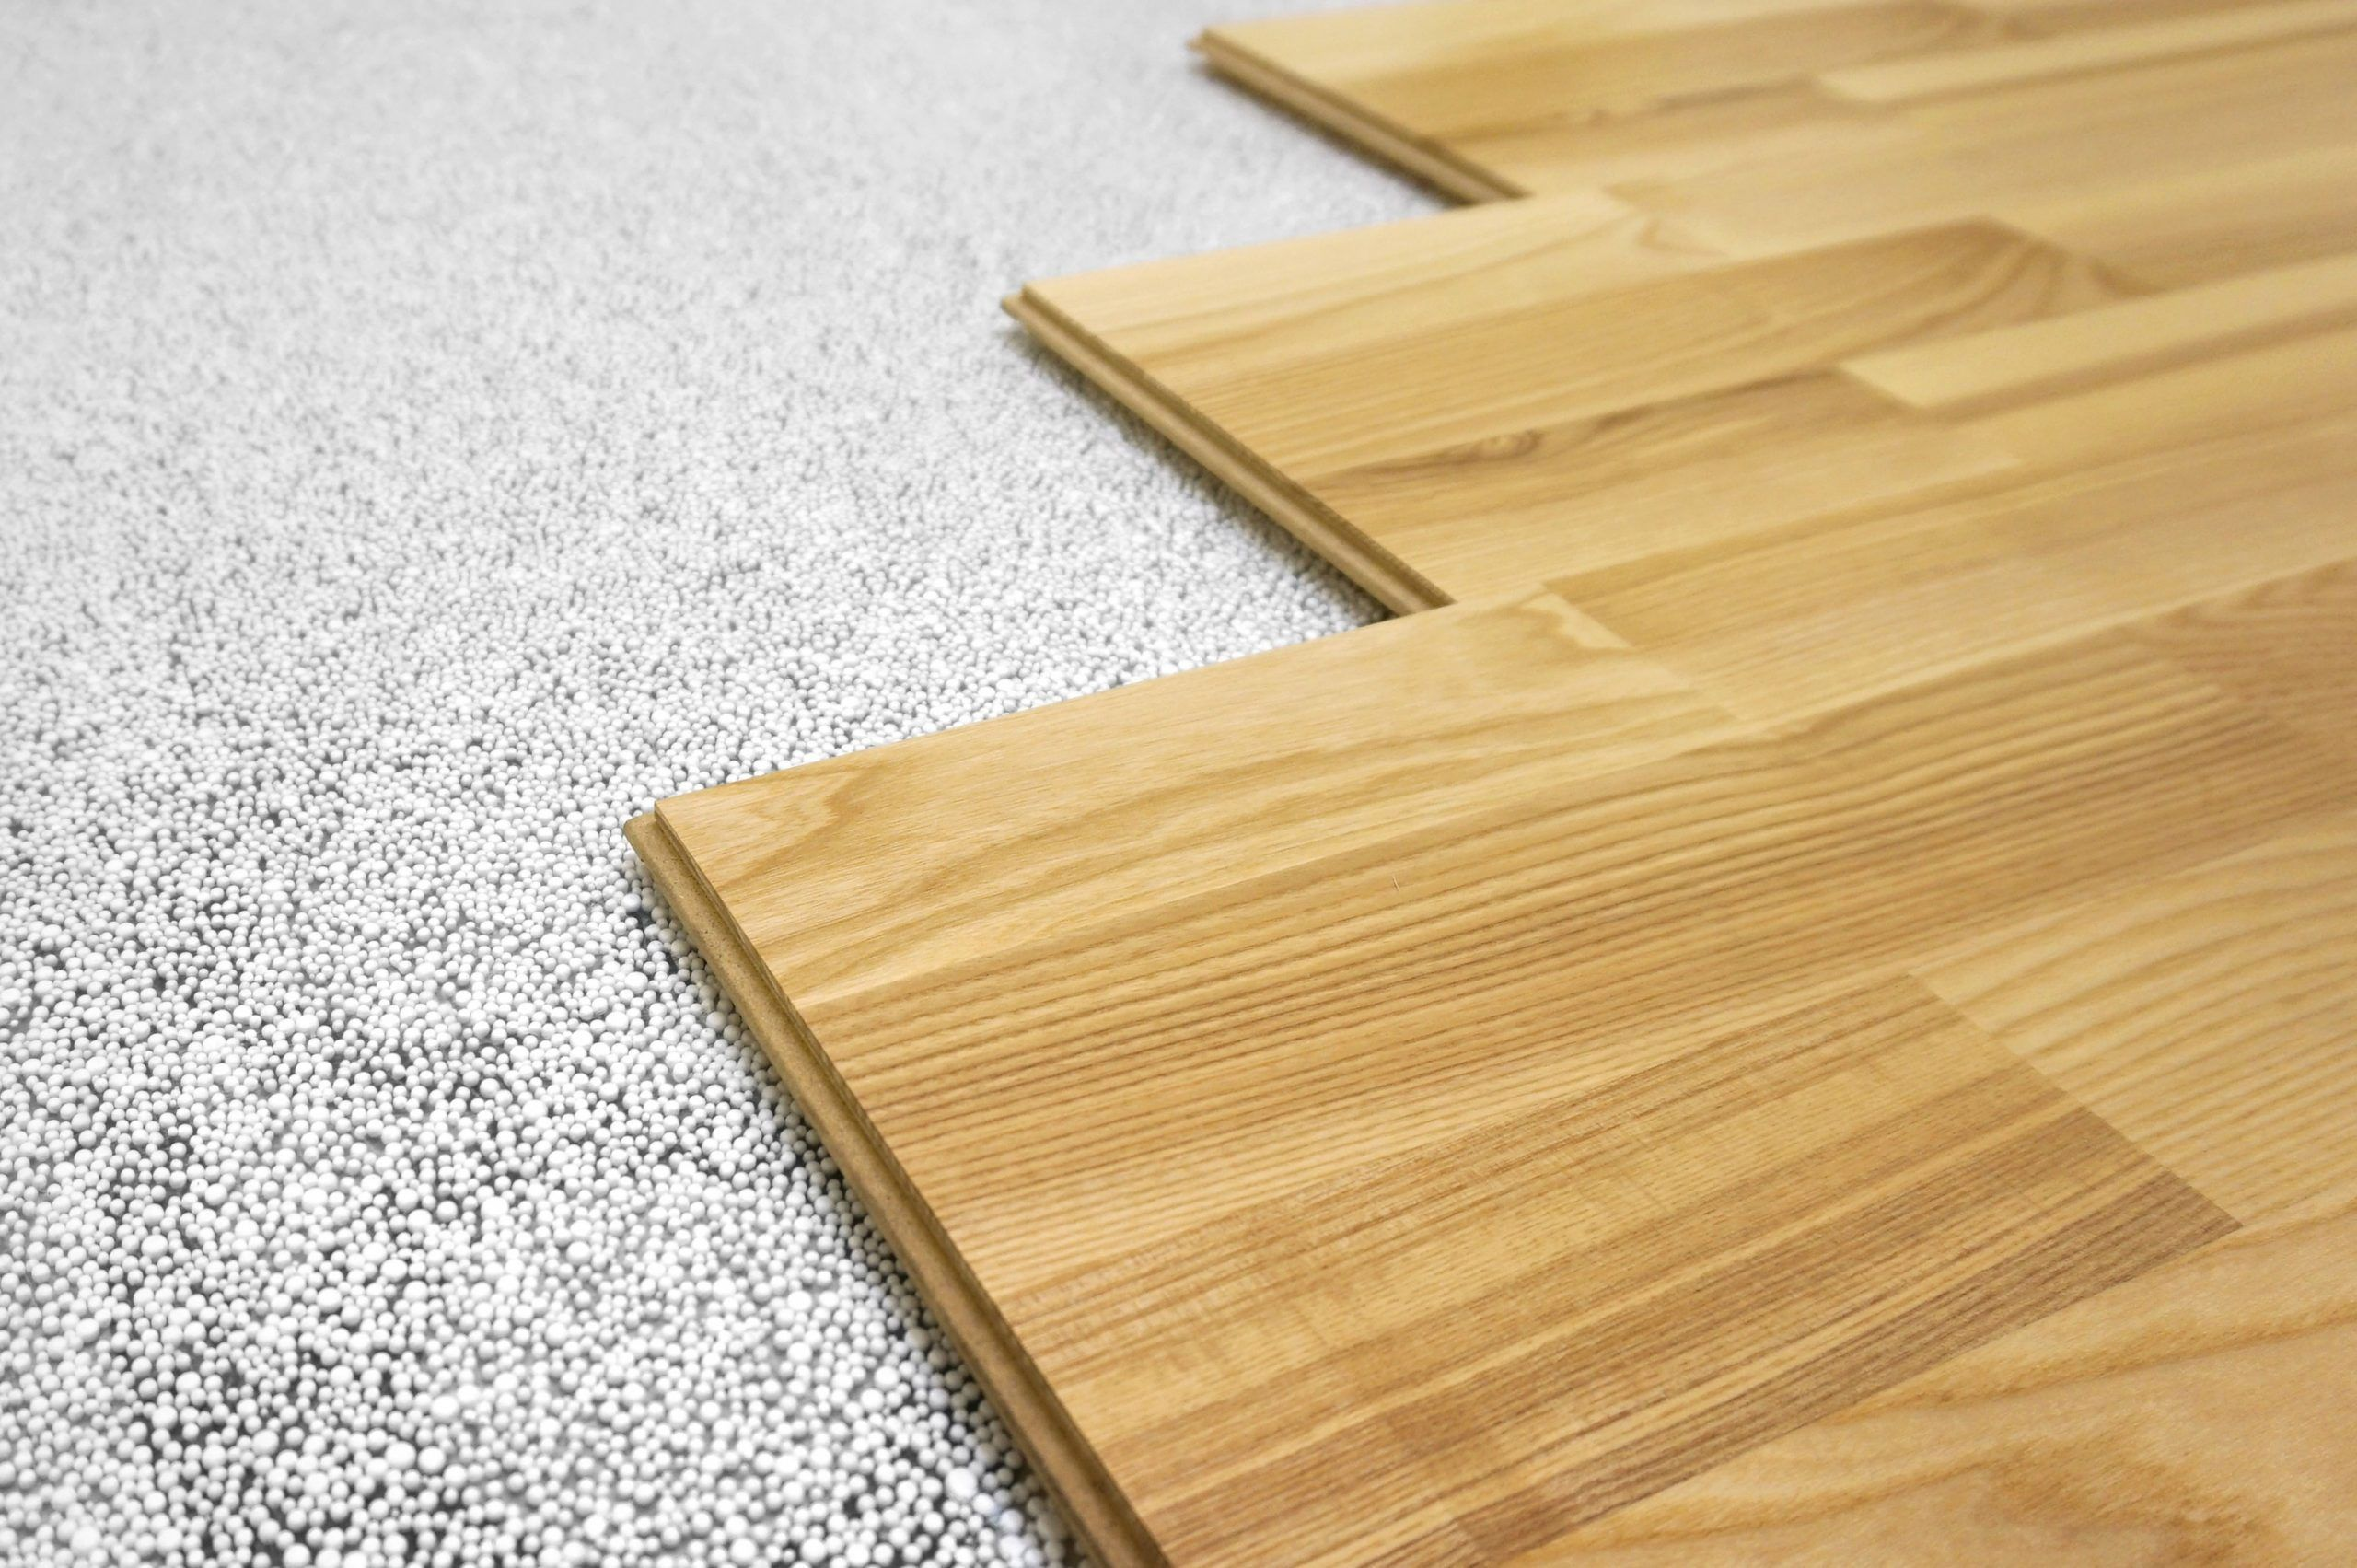 Bedroom Wooden Flooring Price In 2020 Cost Of Wood Flooring Cost Of Laminate Flooring Flooring Cost